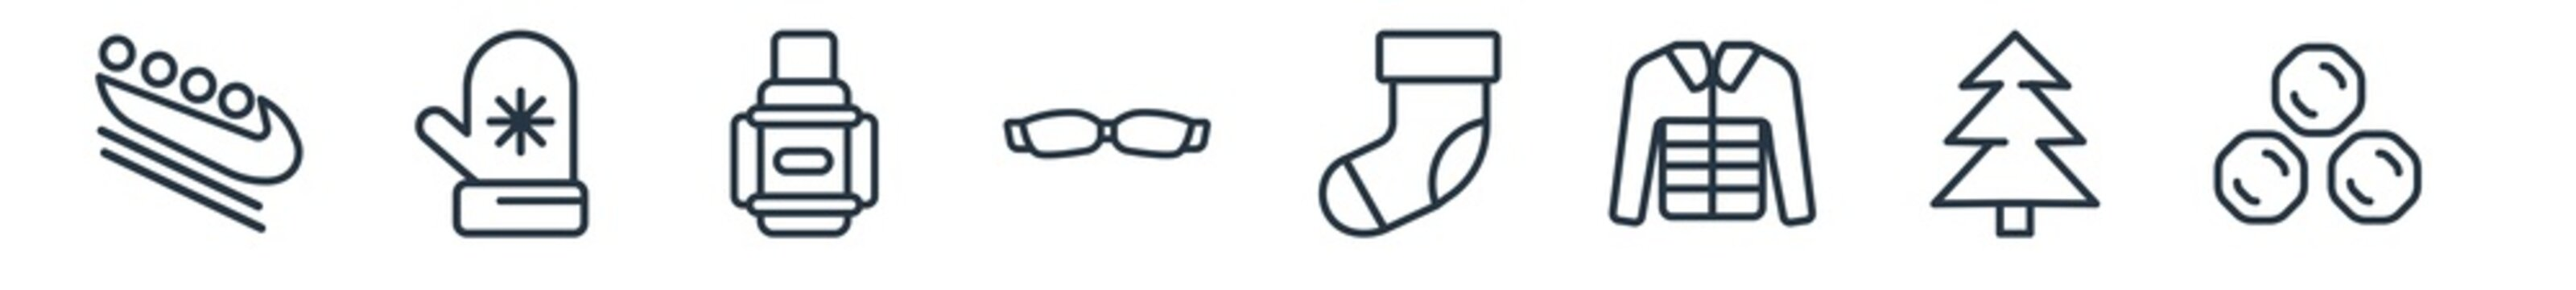 linear set of winter outline icons. line vector icons such as bobsled, mittens, themos flask, goggles, christmas sock, snow ball vector illustration.